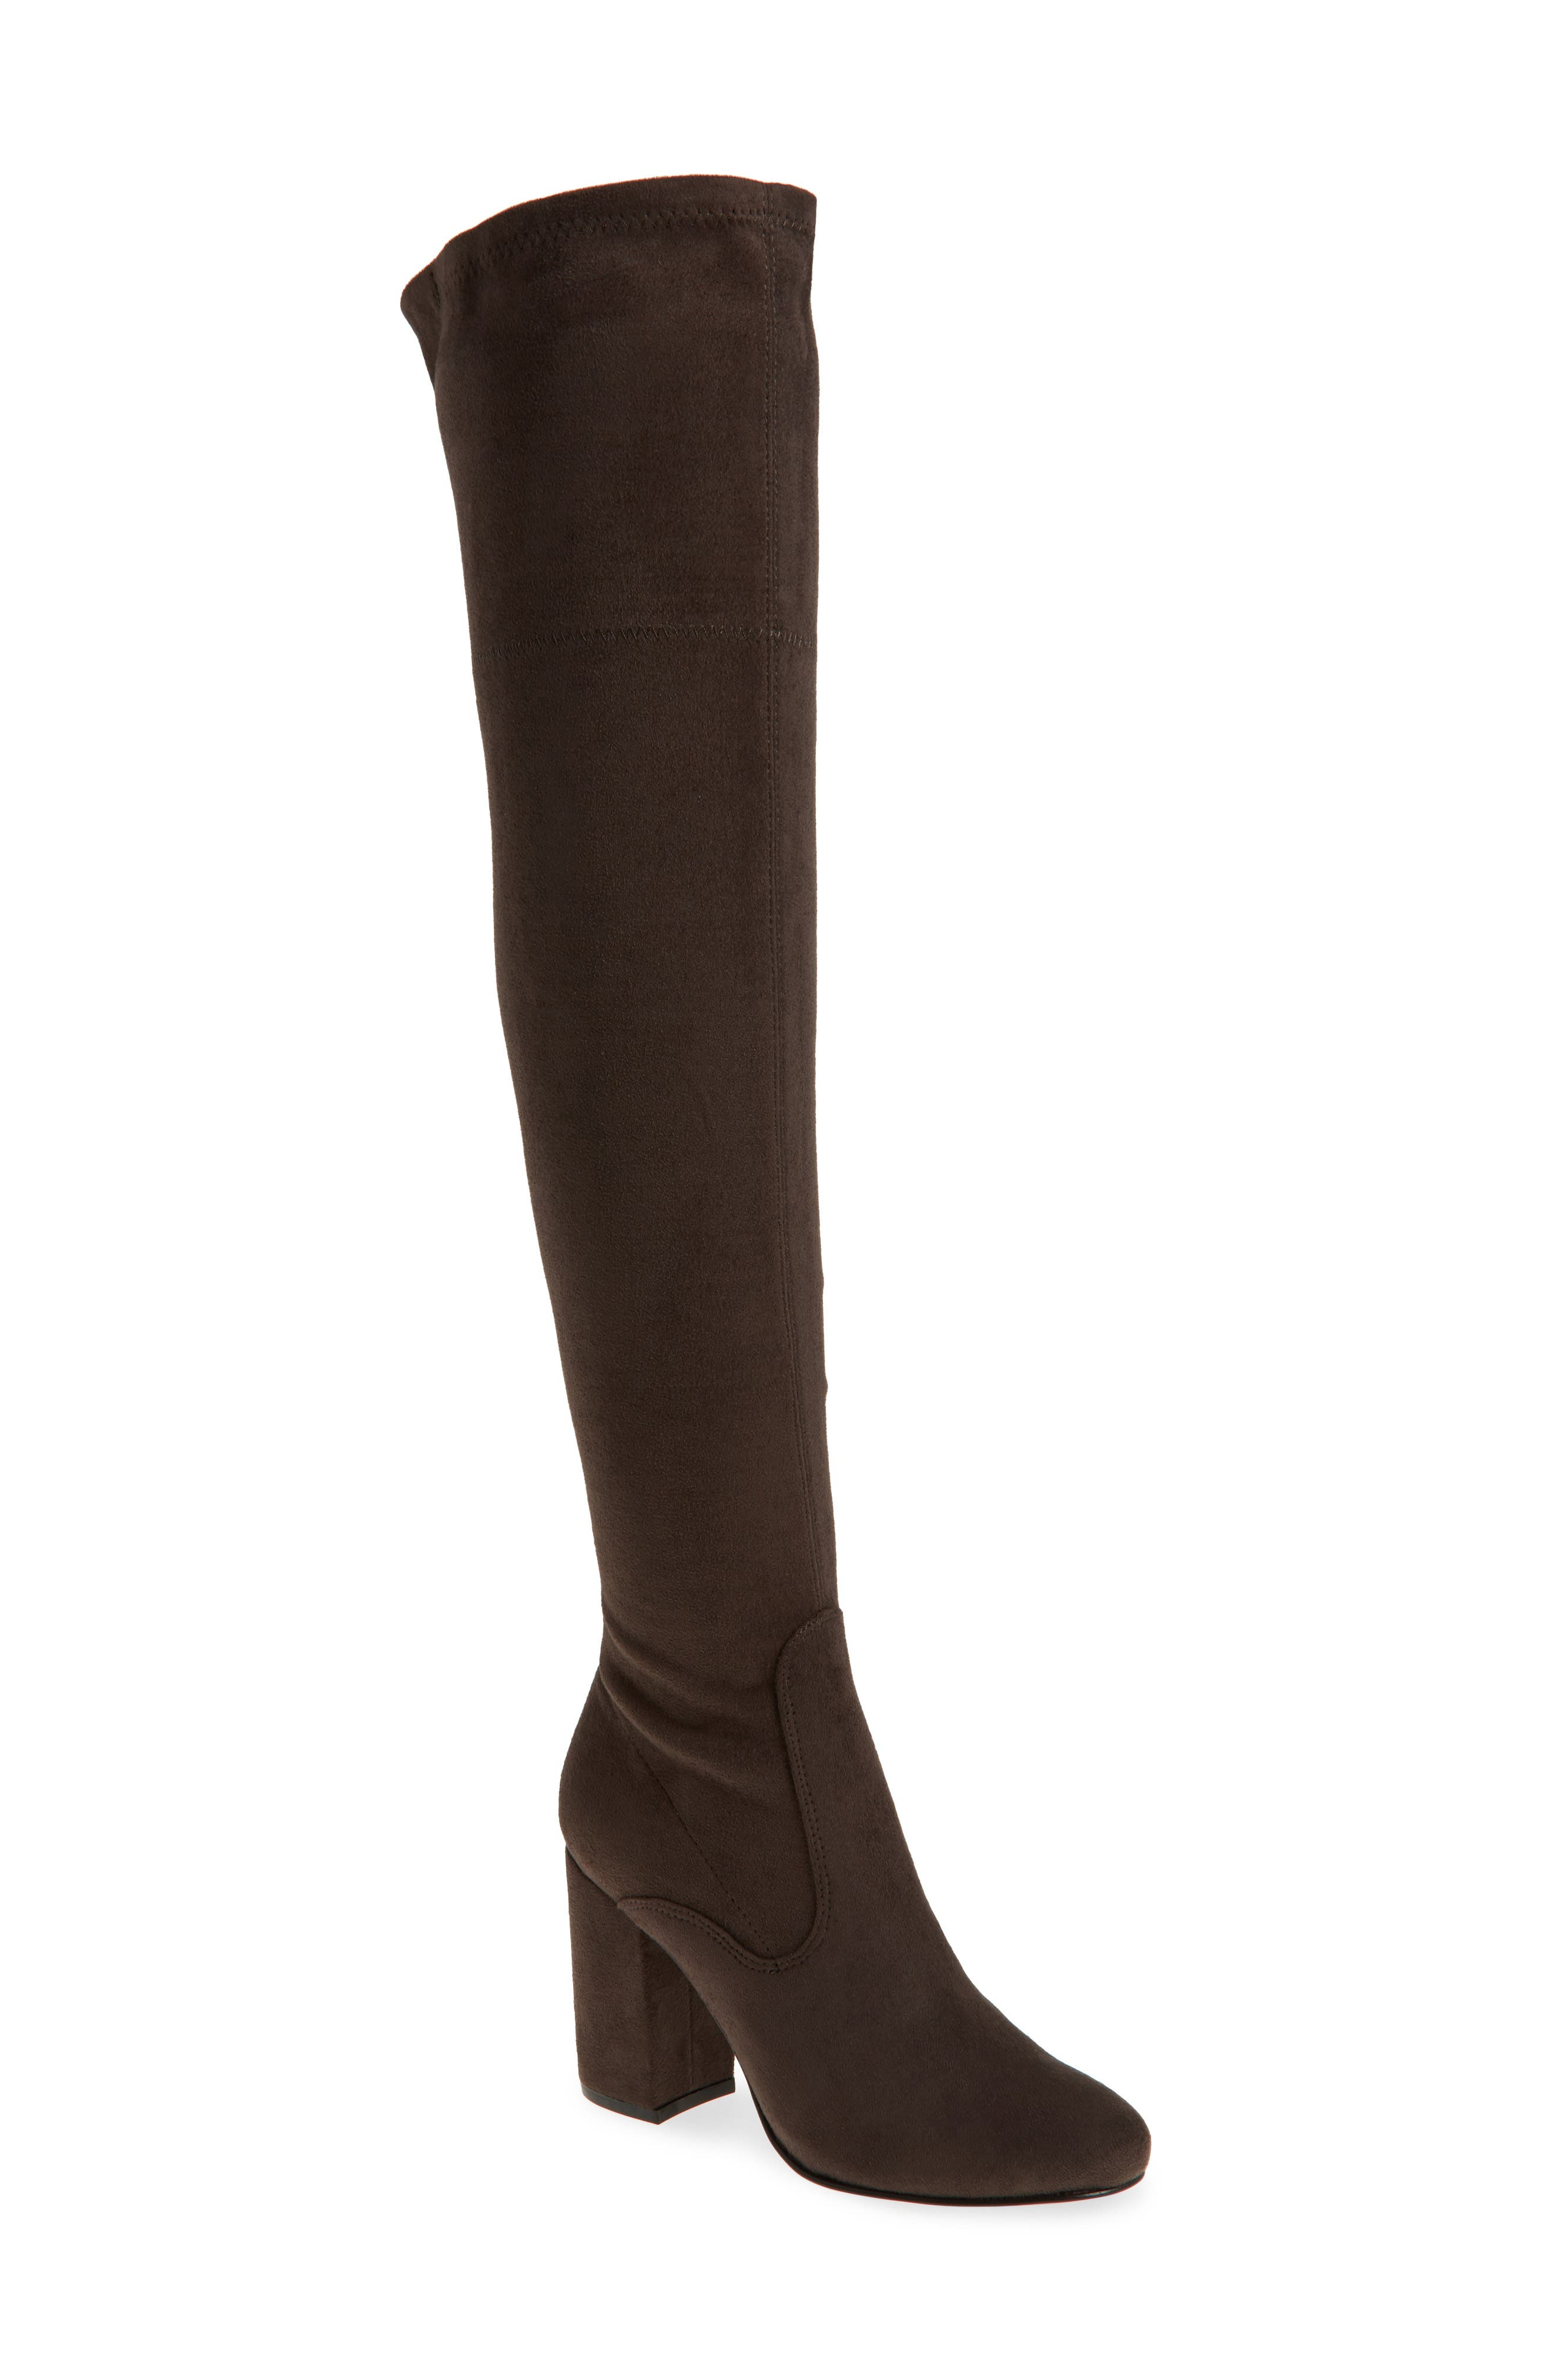 Alternate Image 1 Selected - Kenneth Cole New York Carah Over the Knee Boot (Women)